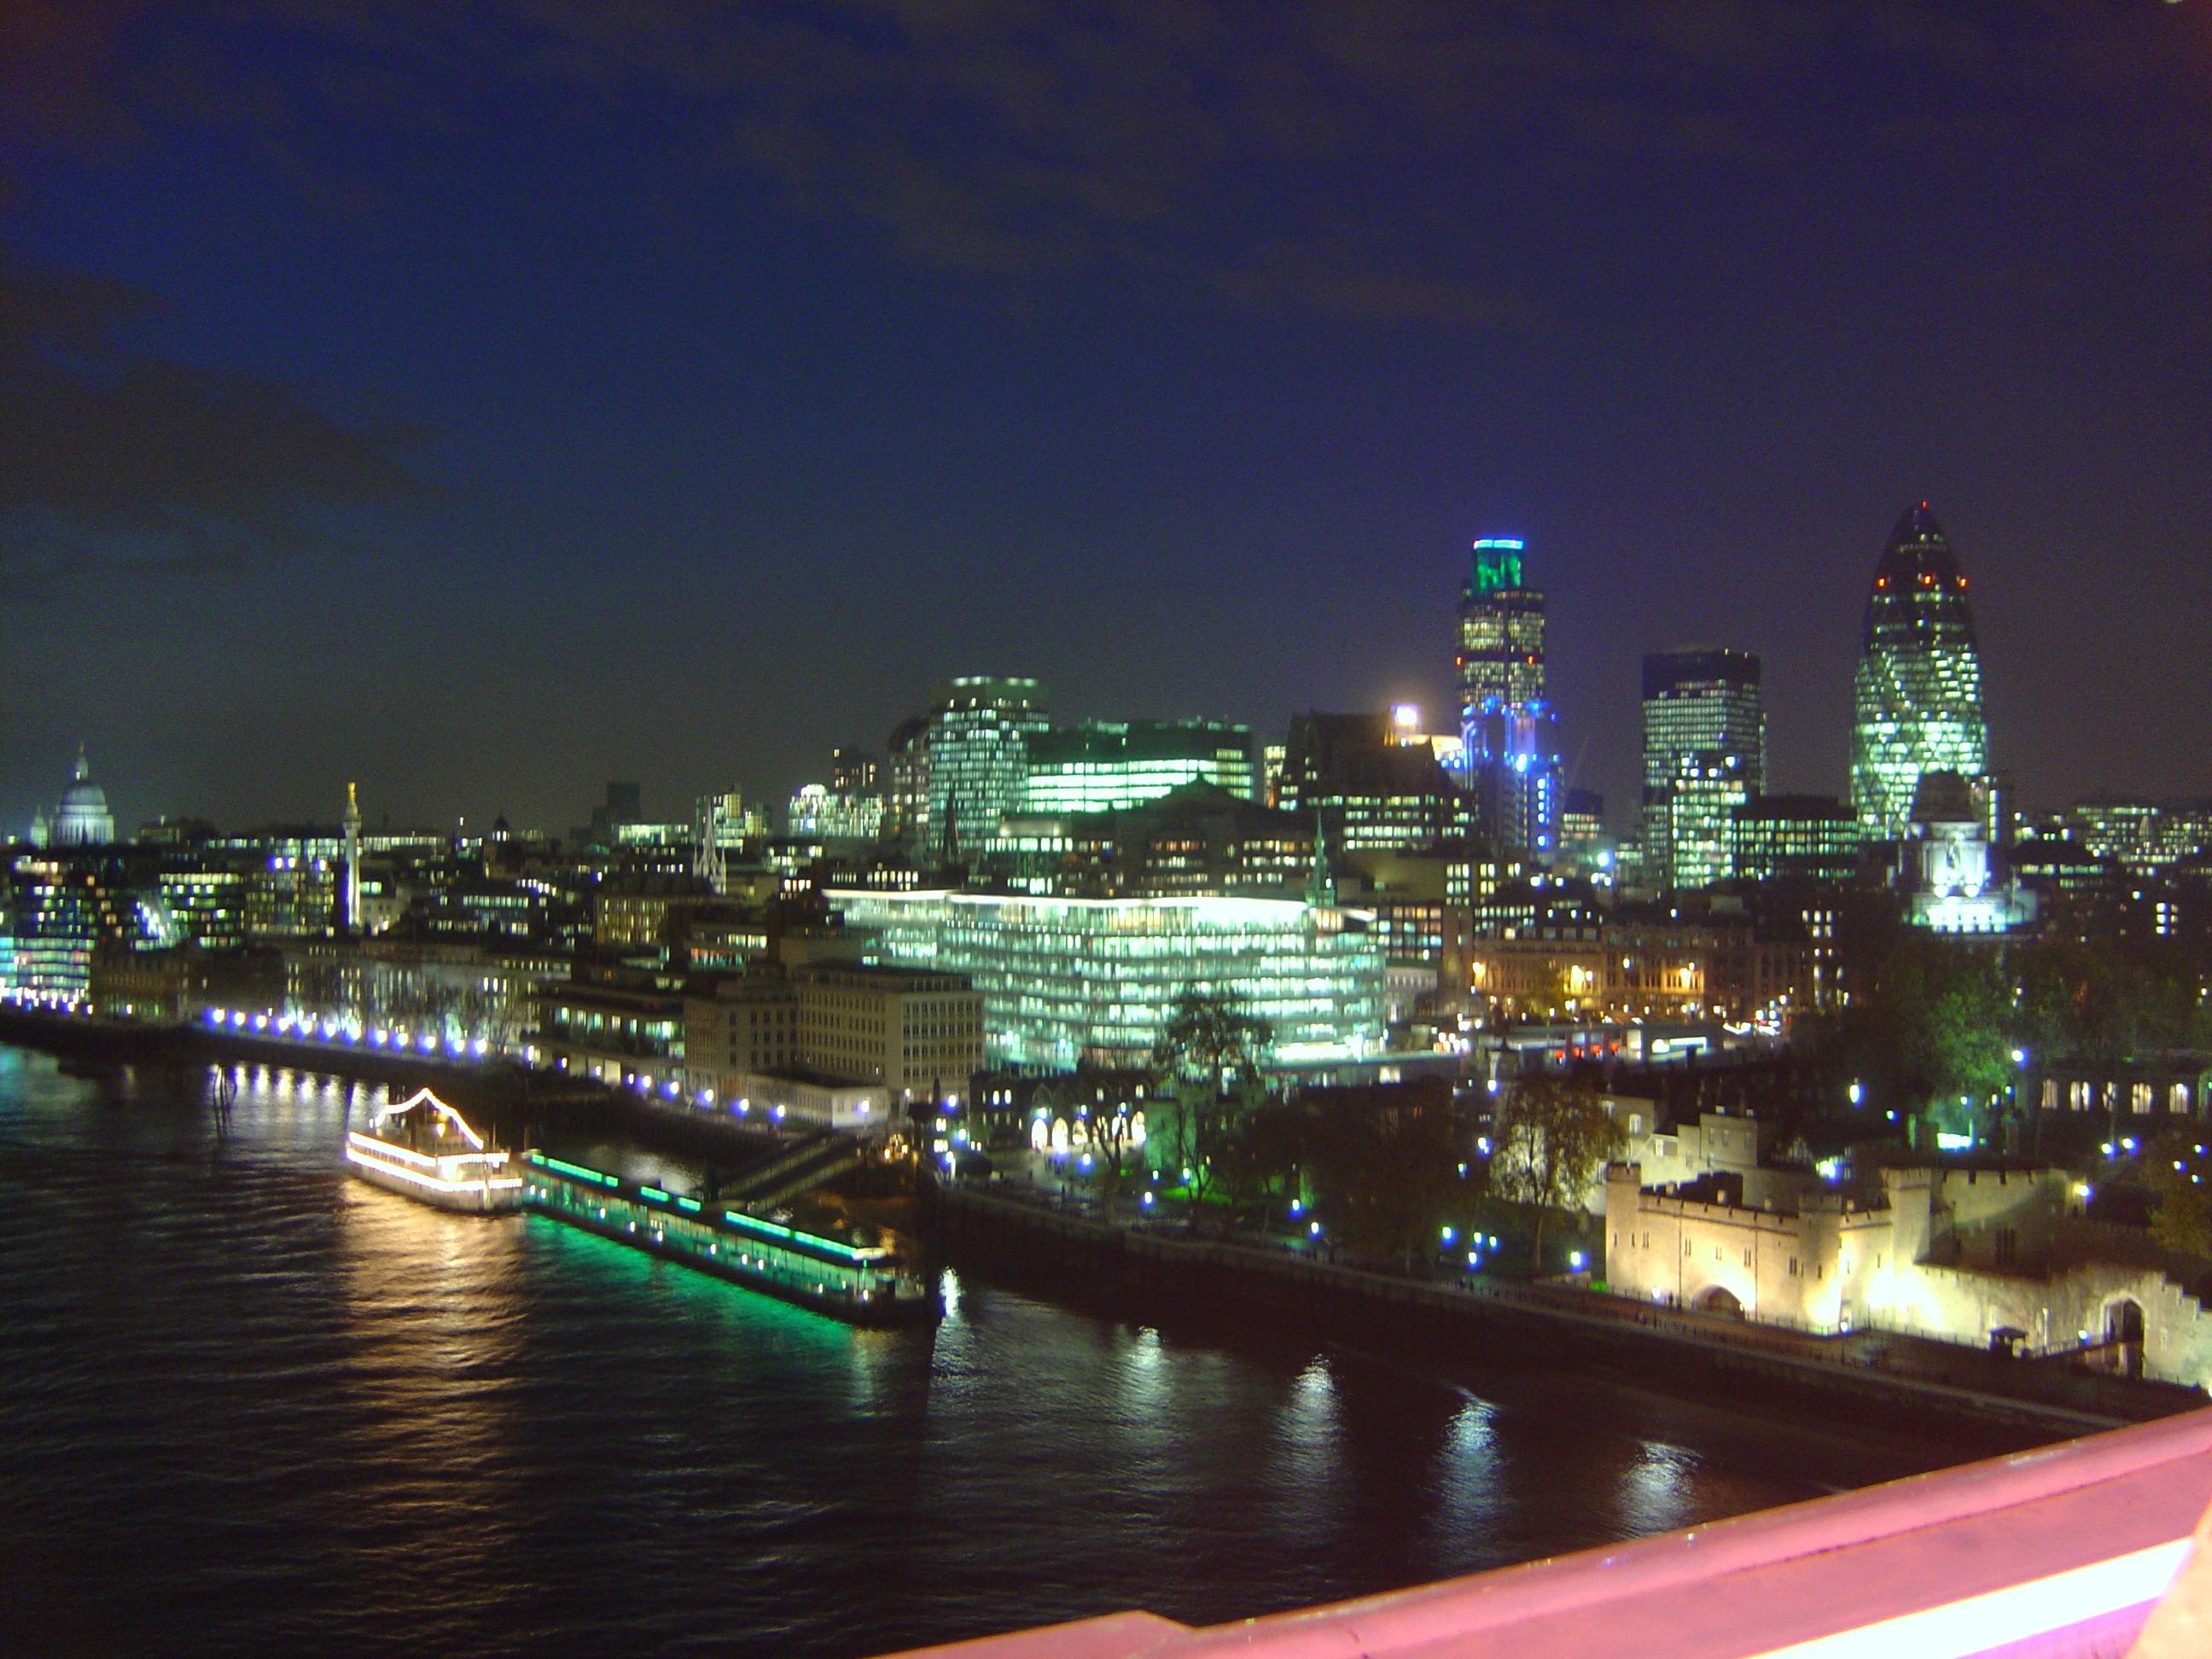 via http://upload.wikimedia.org/wikipedia/commons/2/25/City_of_London_at_night.jpg